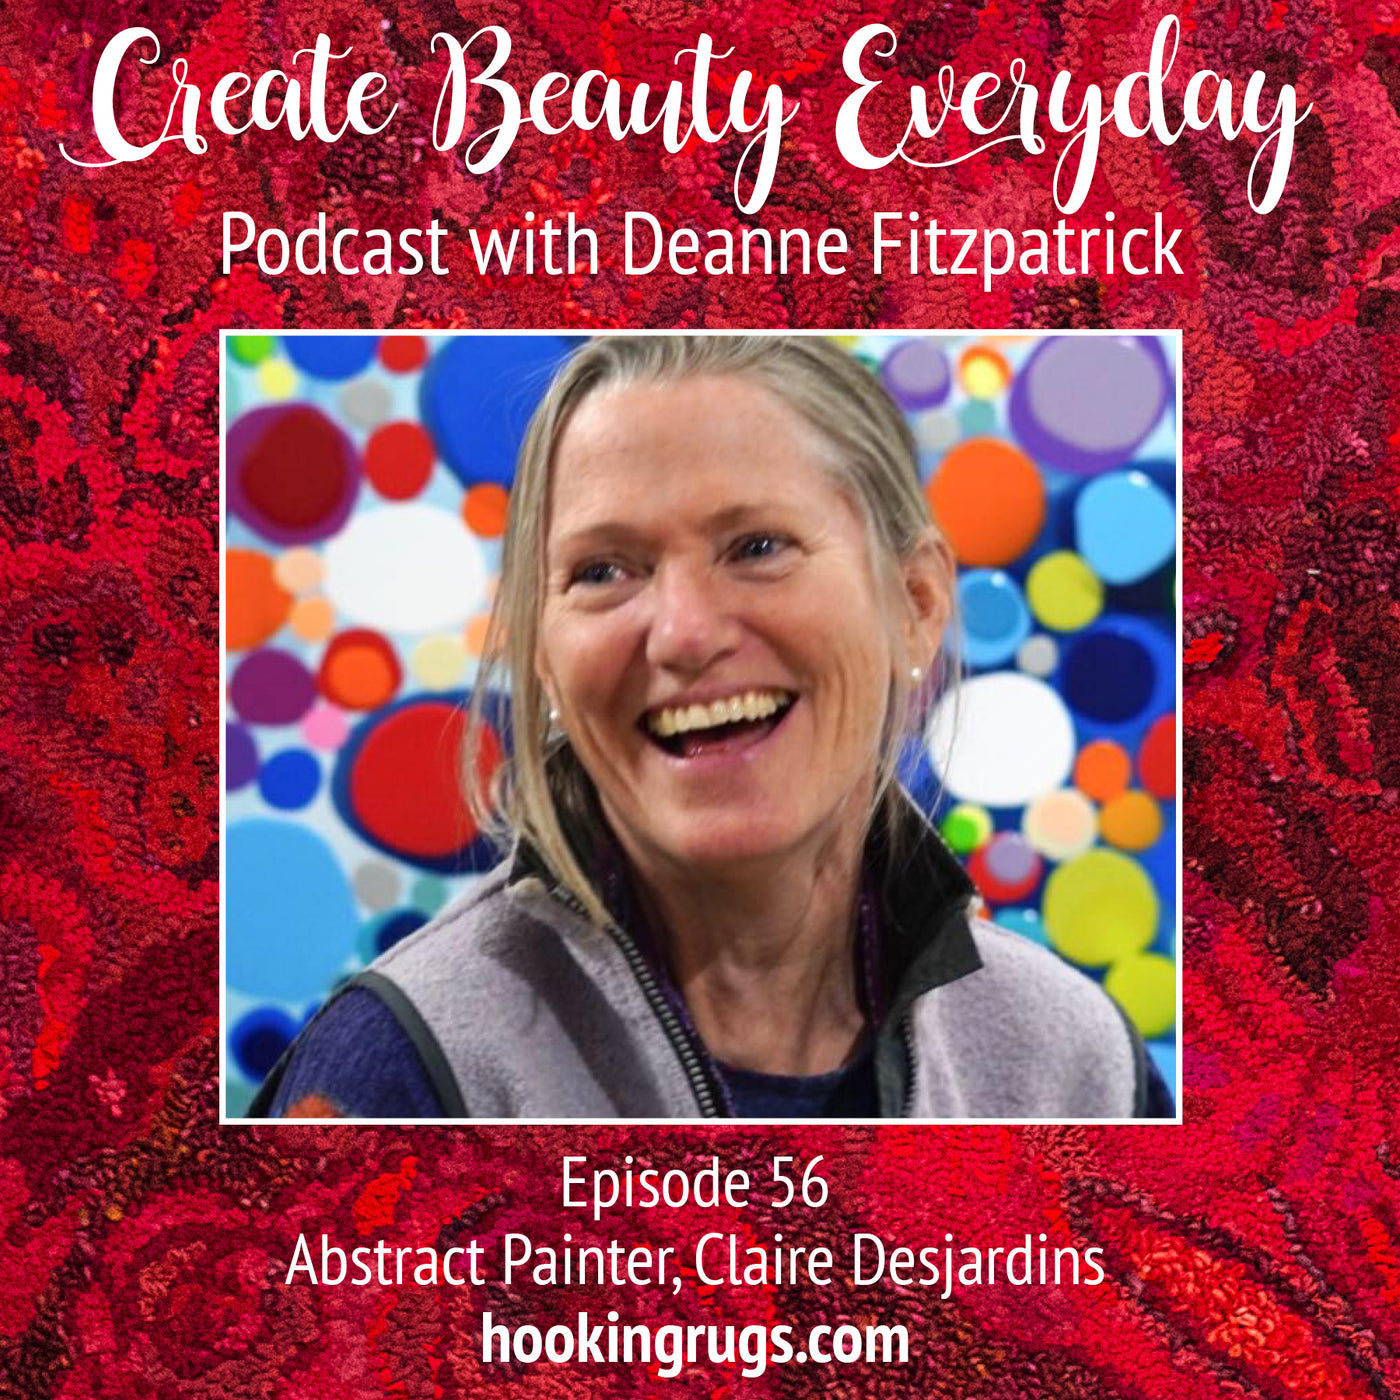 Episode 56 A Conversation With Artist, Claire Desjardins